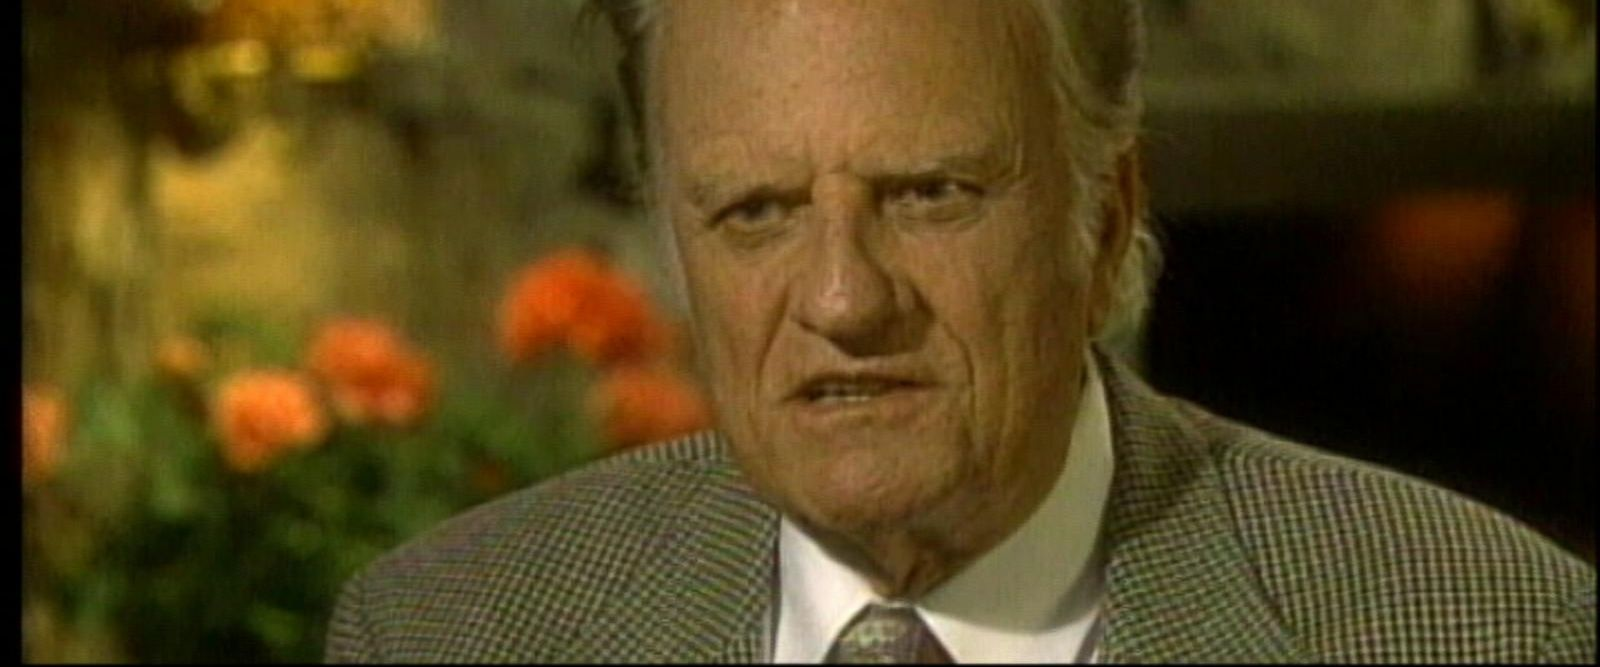 VIDEO: The Christian evangelist died at his home this morning, a family spokesman said.